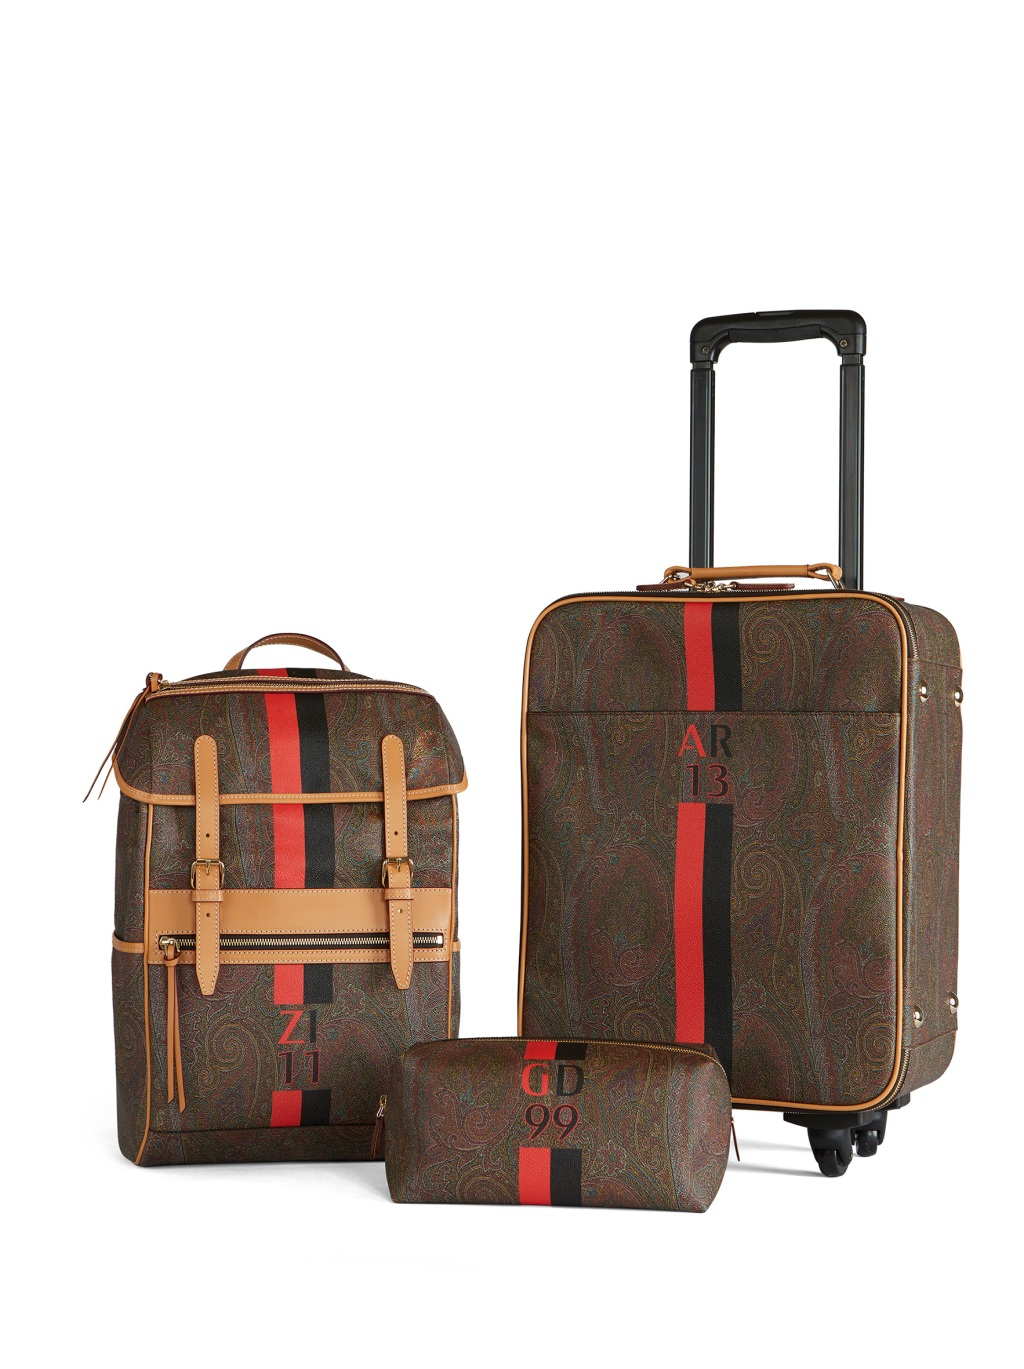 Etro travel accessories for AC Milan